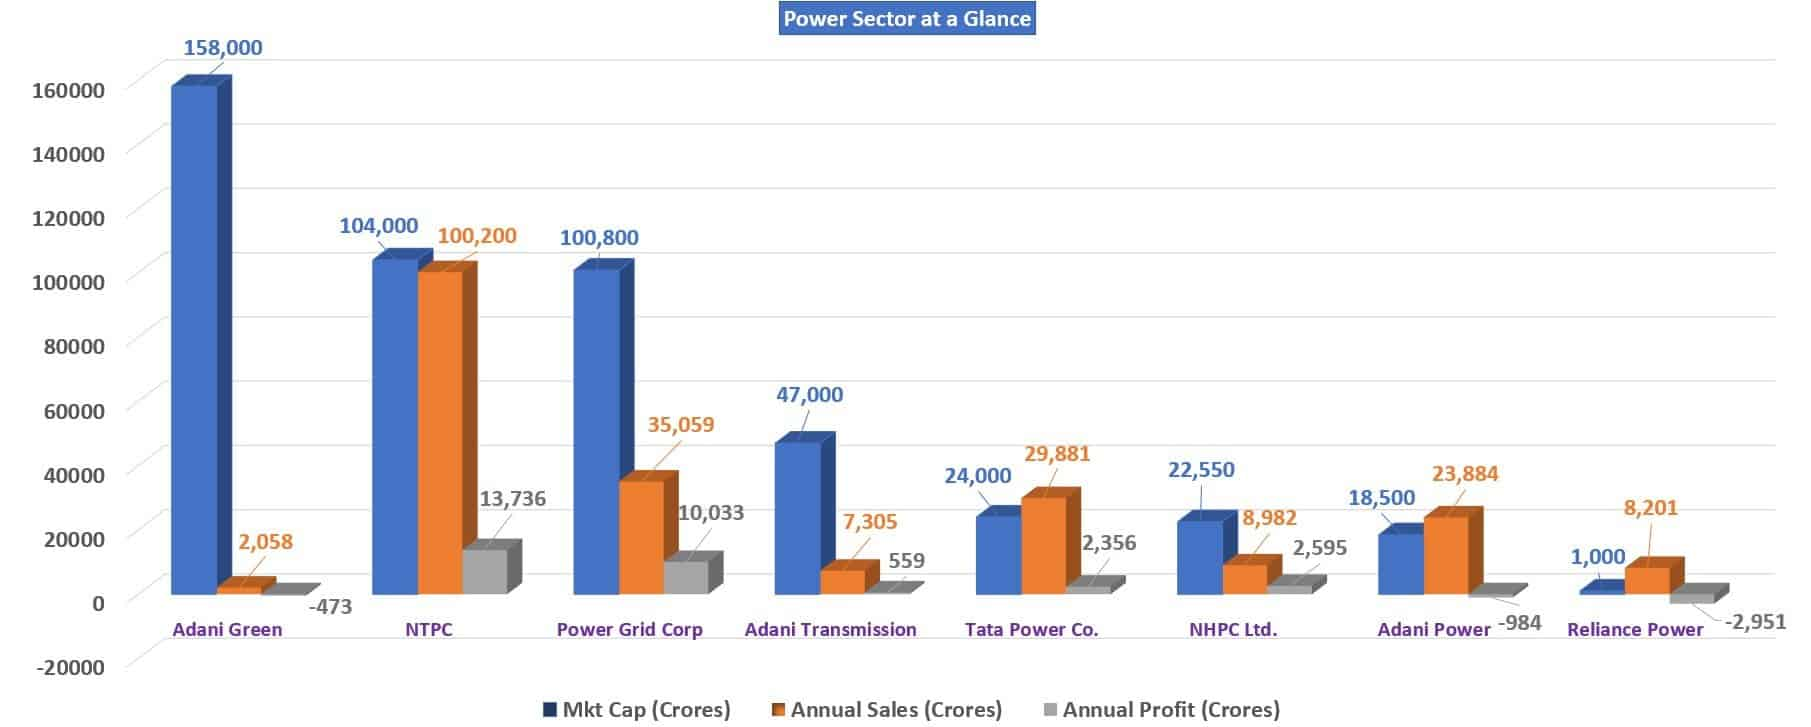 Comparison of power sector company financials